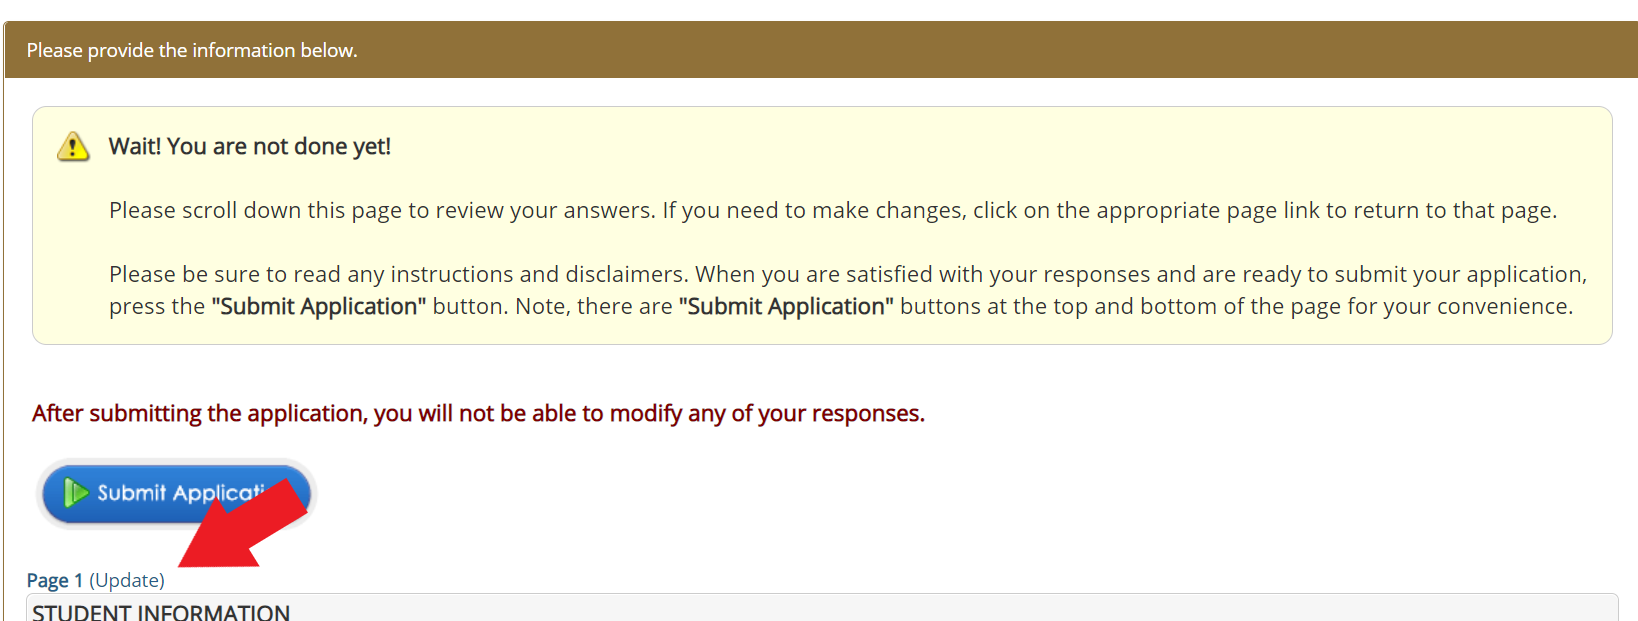 Screenshot of the Scholarship Manager Page 1 Update button